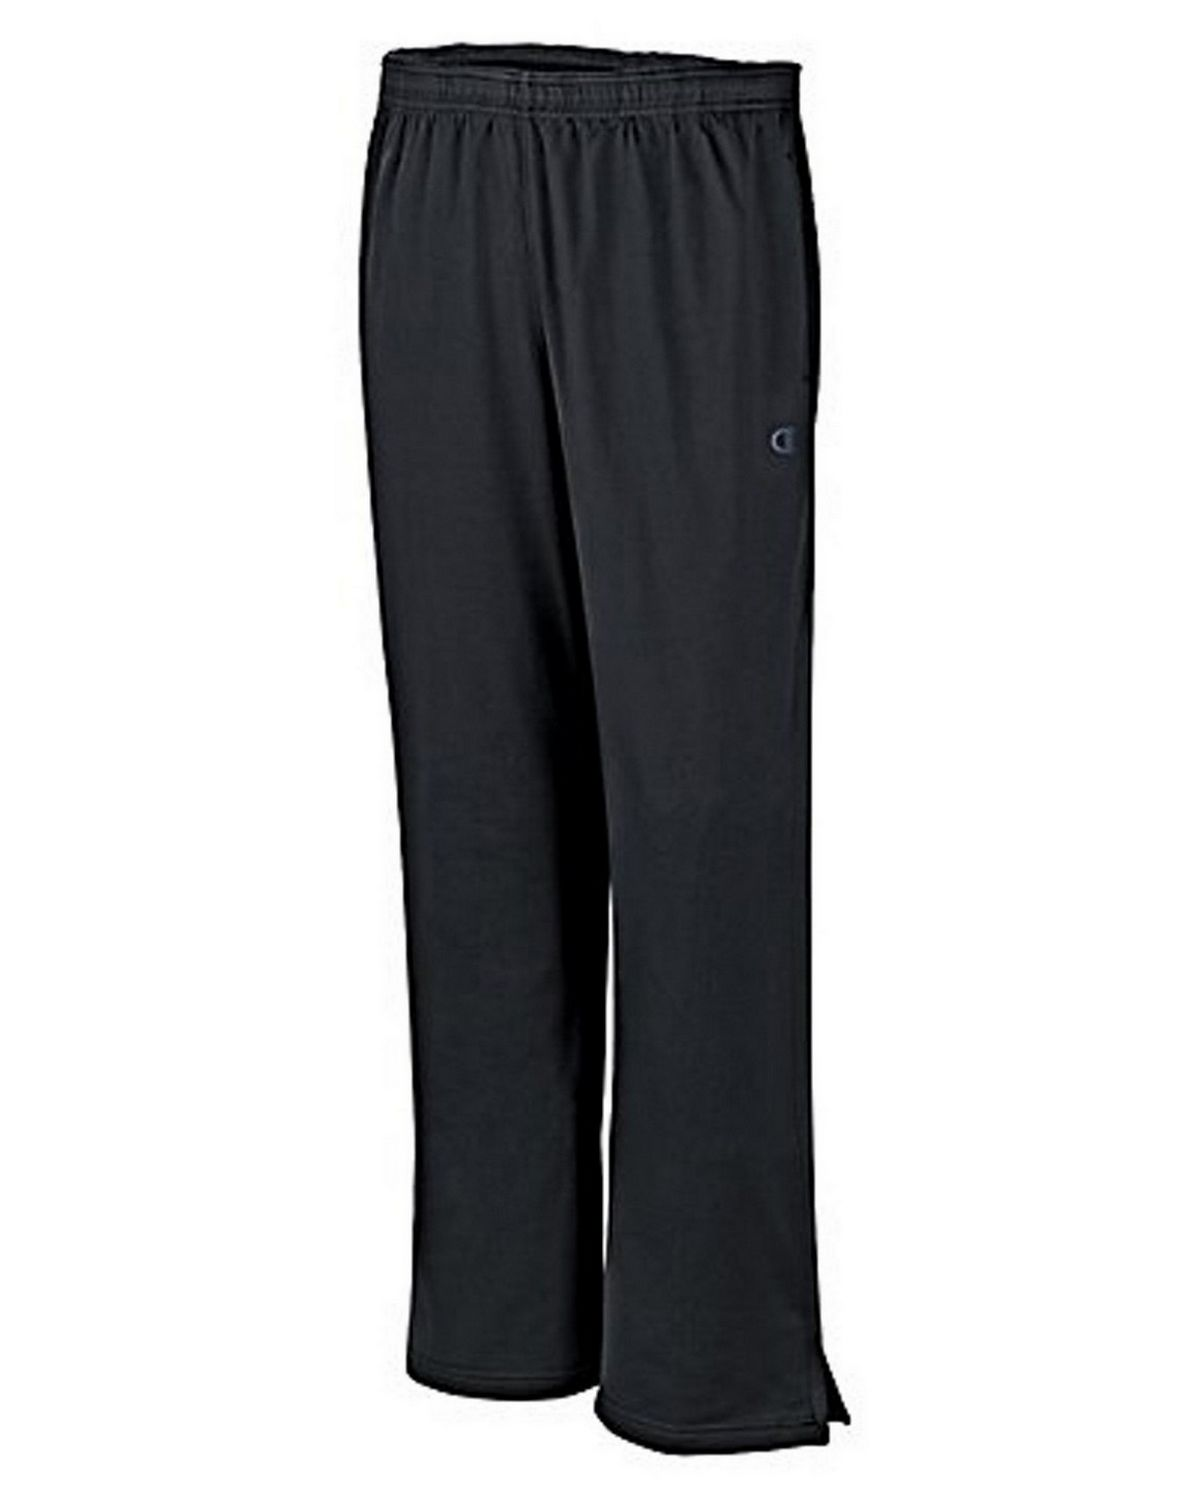 Champion P6609 Vapor PowerTrain Knit Training Pants - Navy - M P6609